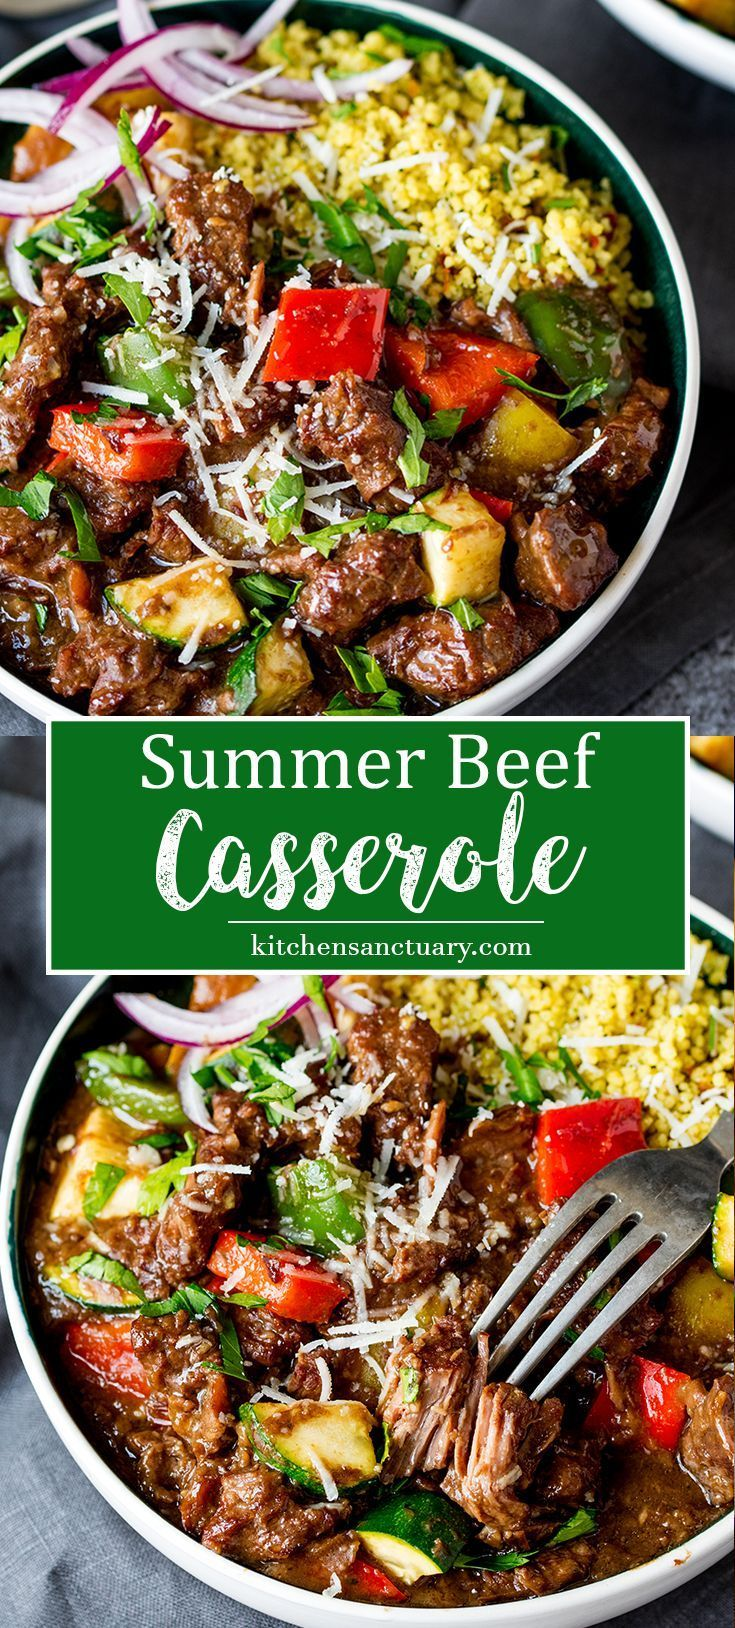 22 Quick And Easy Beef Recipes For Dinner Ray Amaari Beef Recipes For Dinner Healthy Summer Dinner Recipes Red Meat Recipes